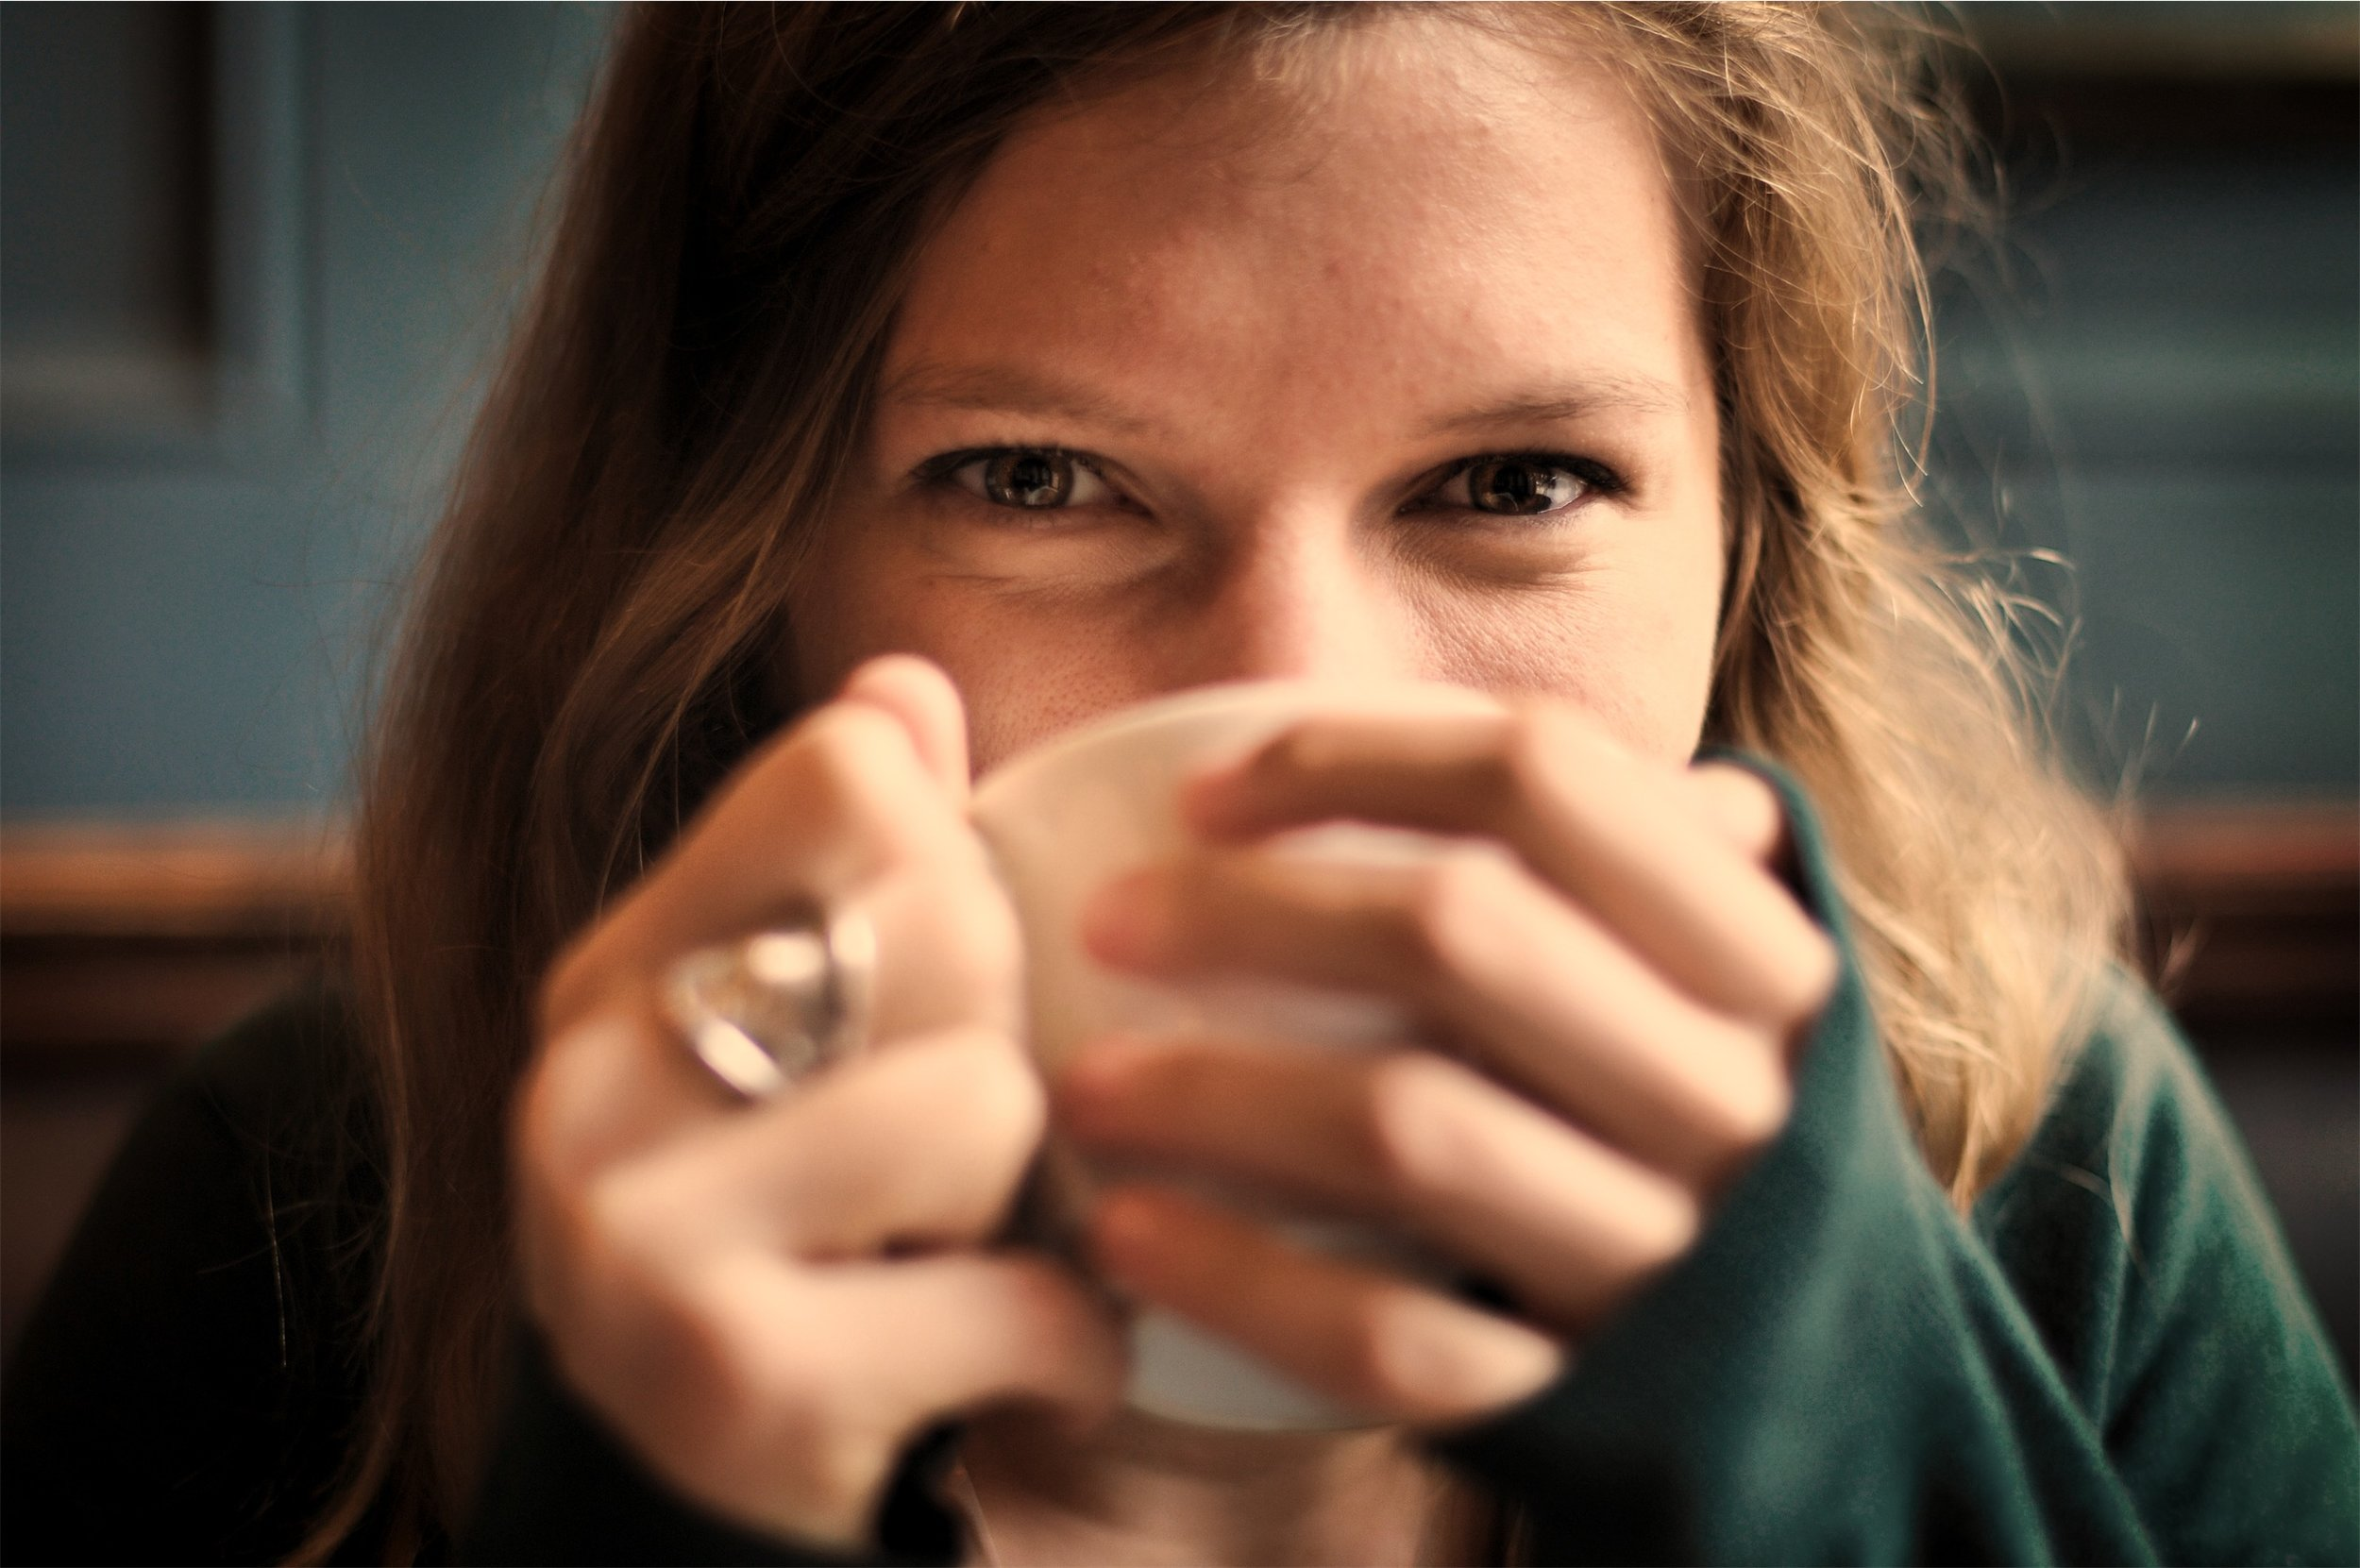 boss-fight-stock-photos-free-high-resolution-images-photography-women-woman-cup-coffee[1].jpg